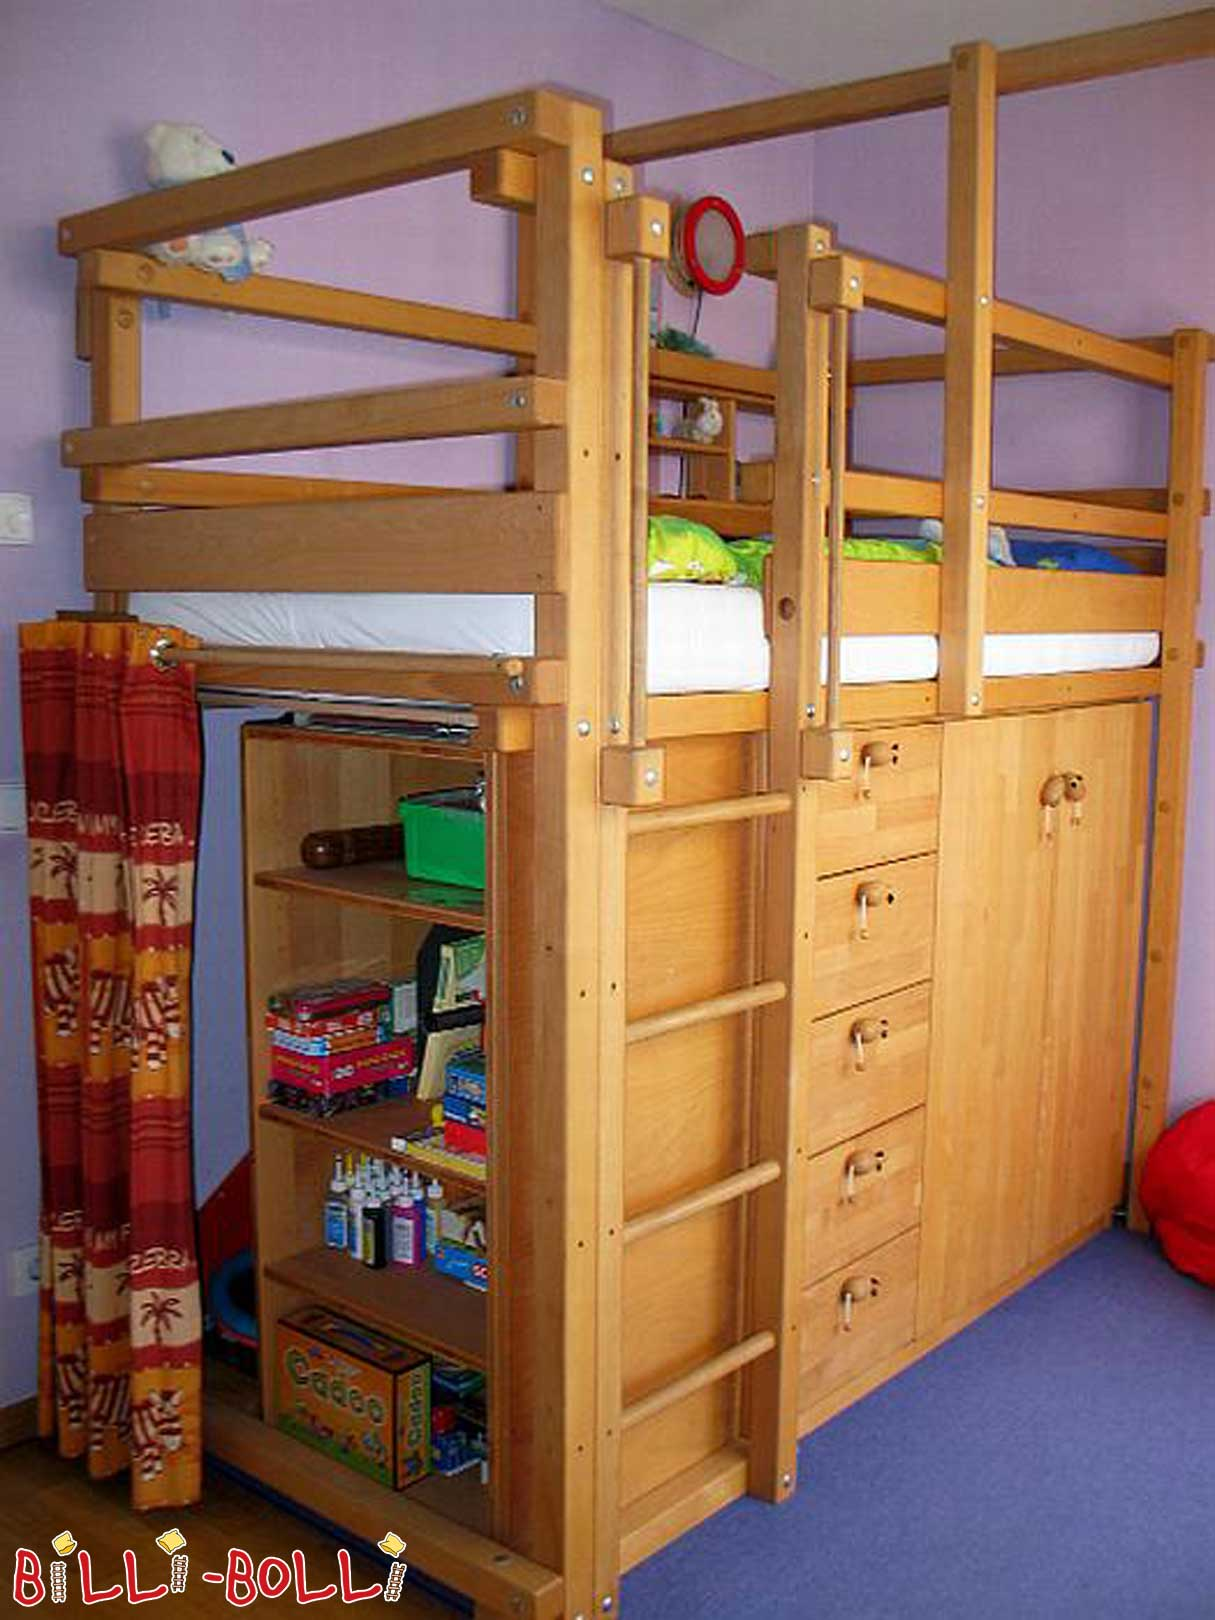 secondhand seite 140 billi bolli kinderm bel. Black Bedroom Furniture Sets. Home Design Ideas